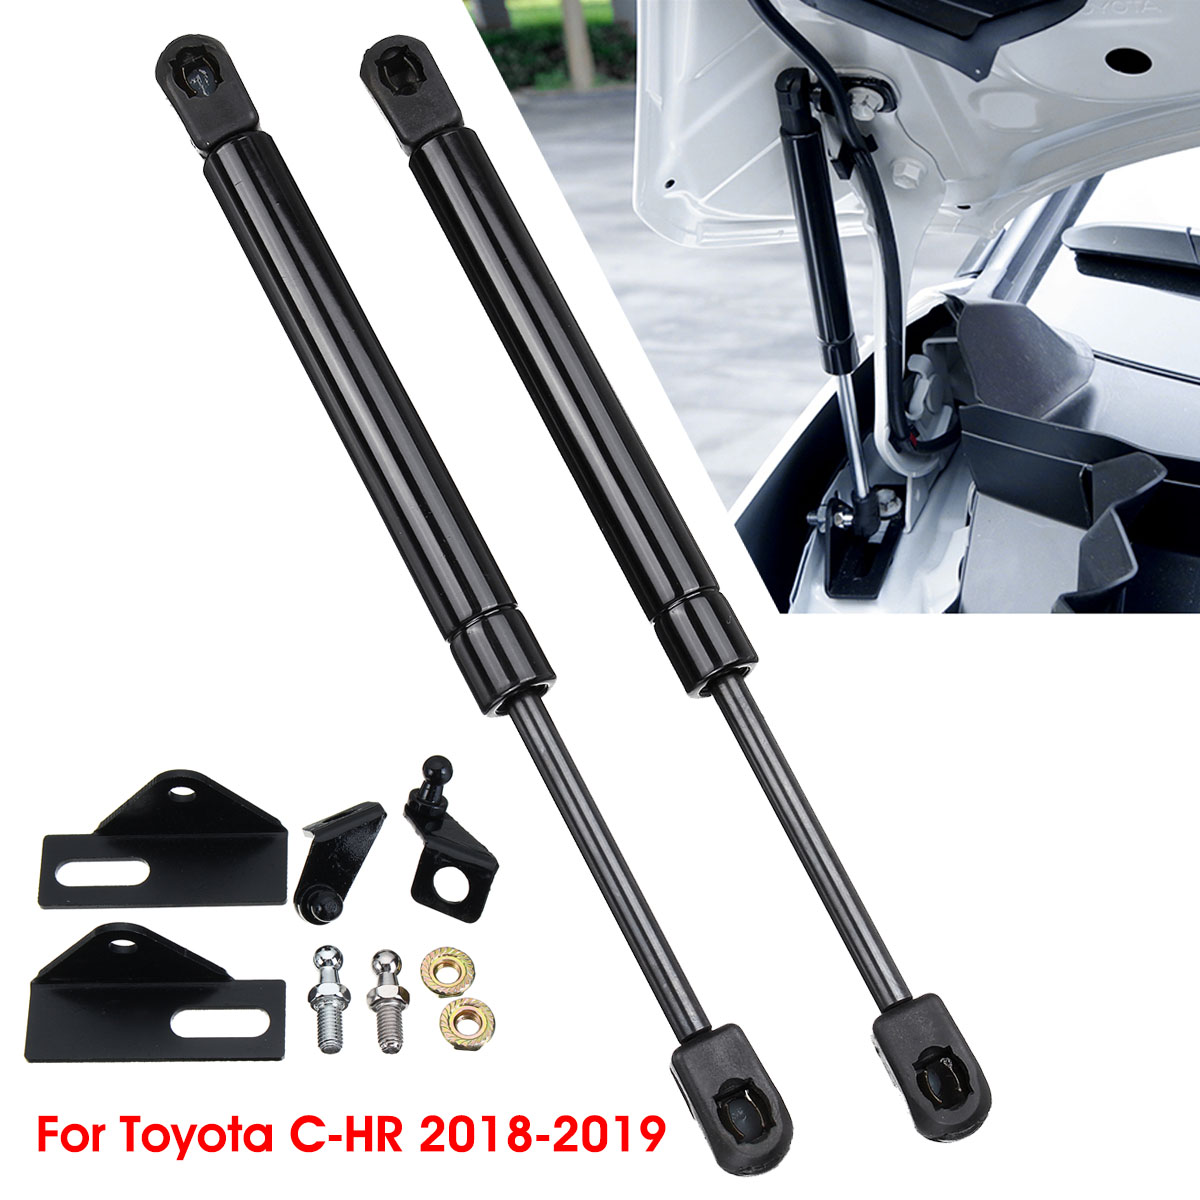 1 RIGHT FRONT HOOD LIFT SUPPORT SHOCK STRUT ARM PROP ROD DAMPER